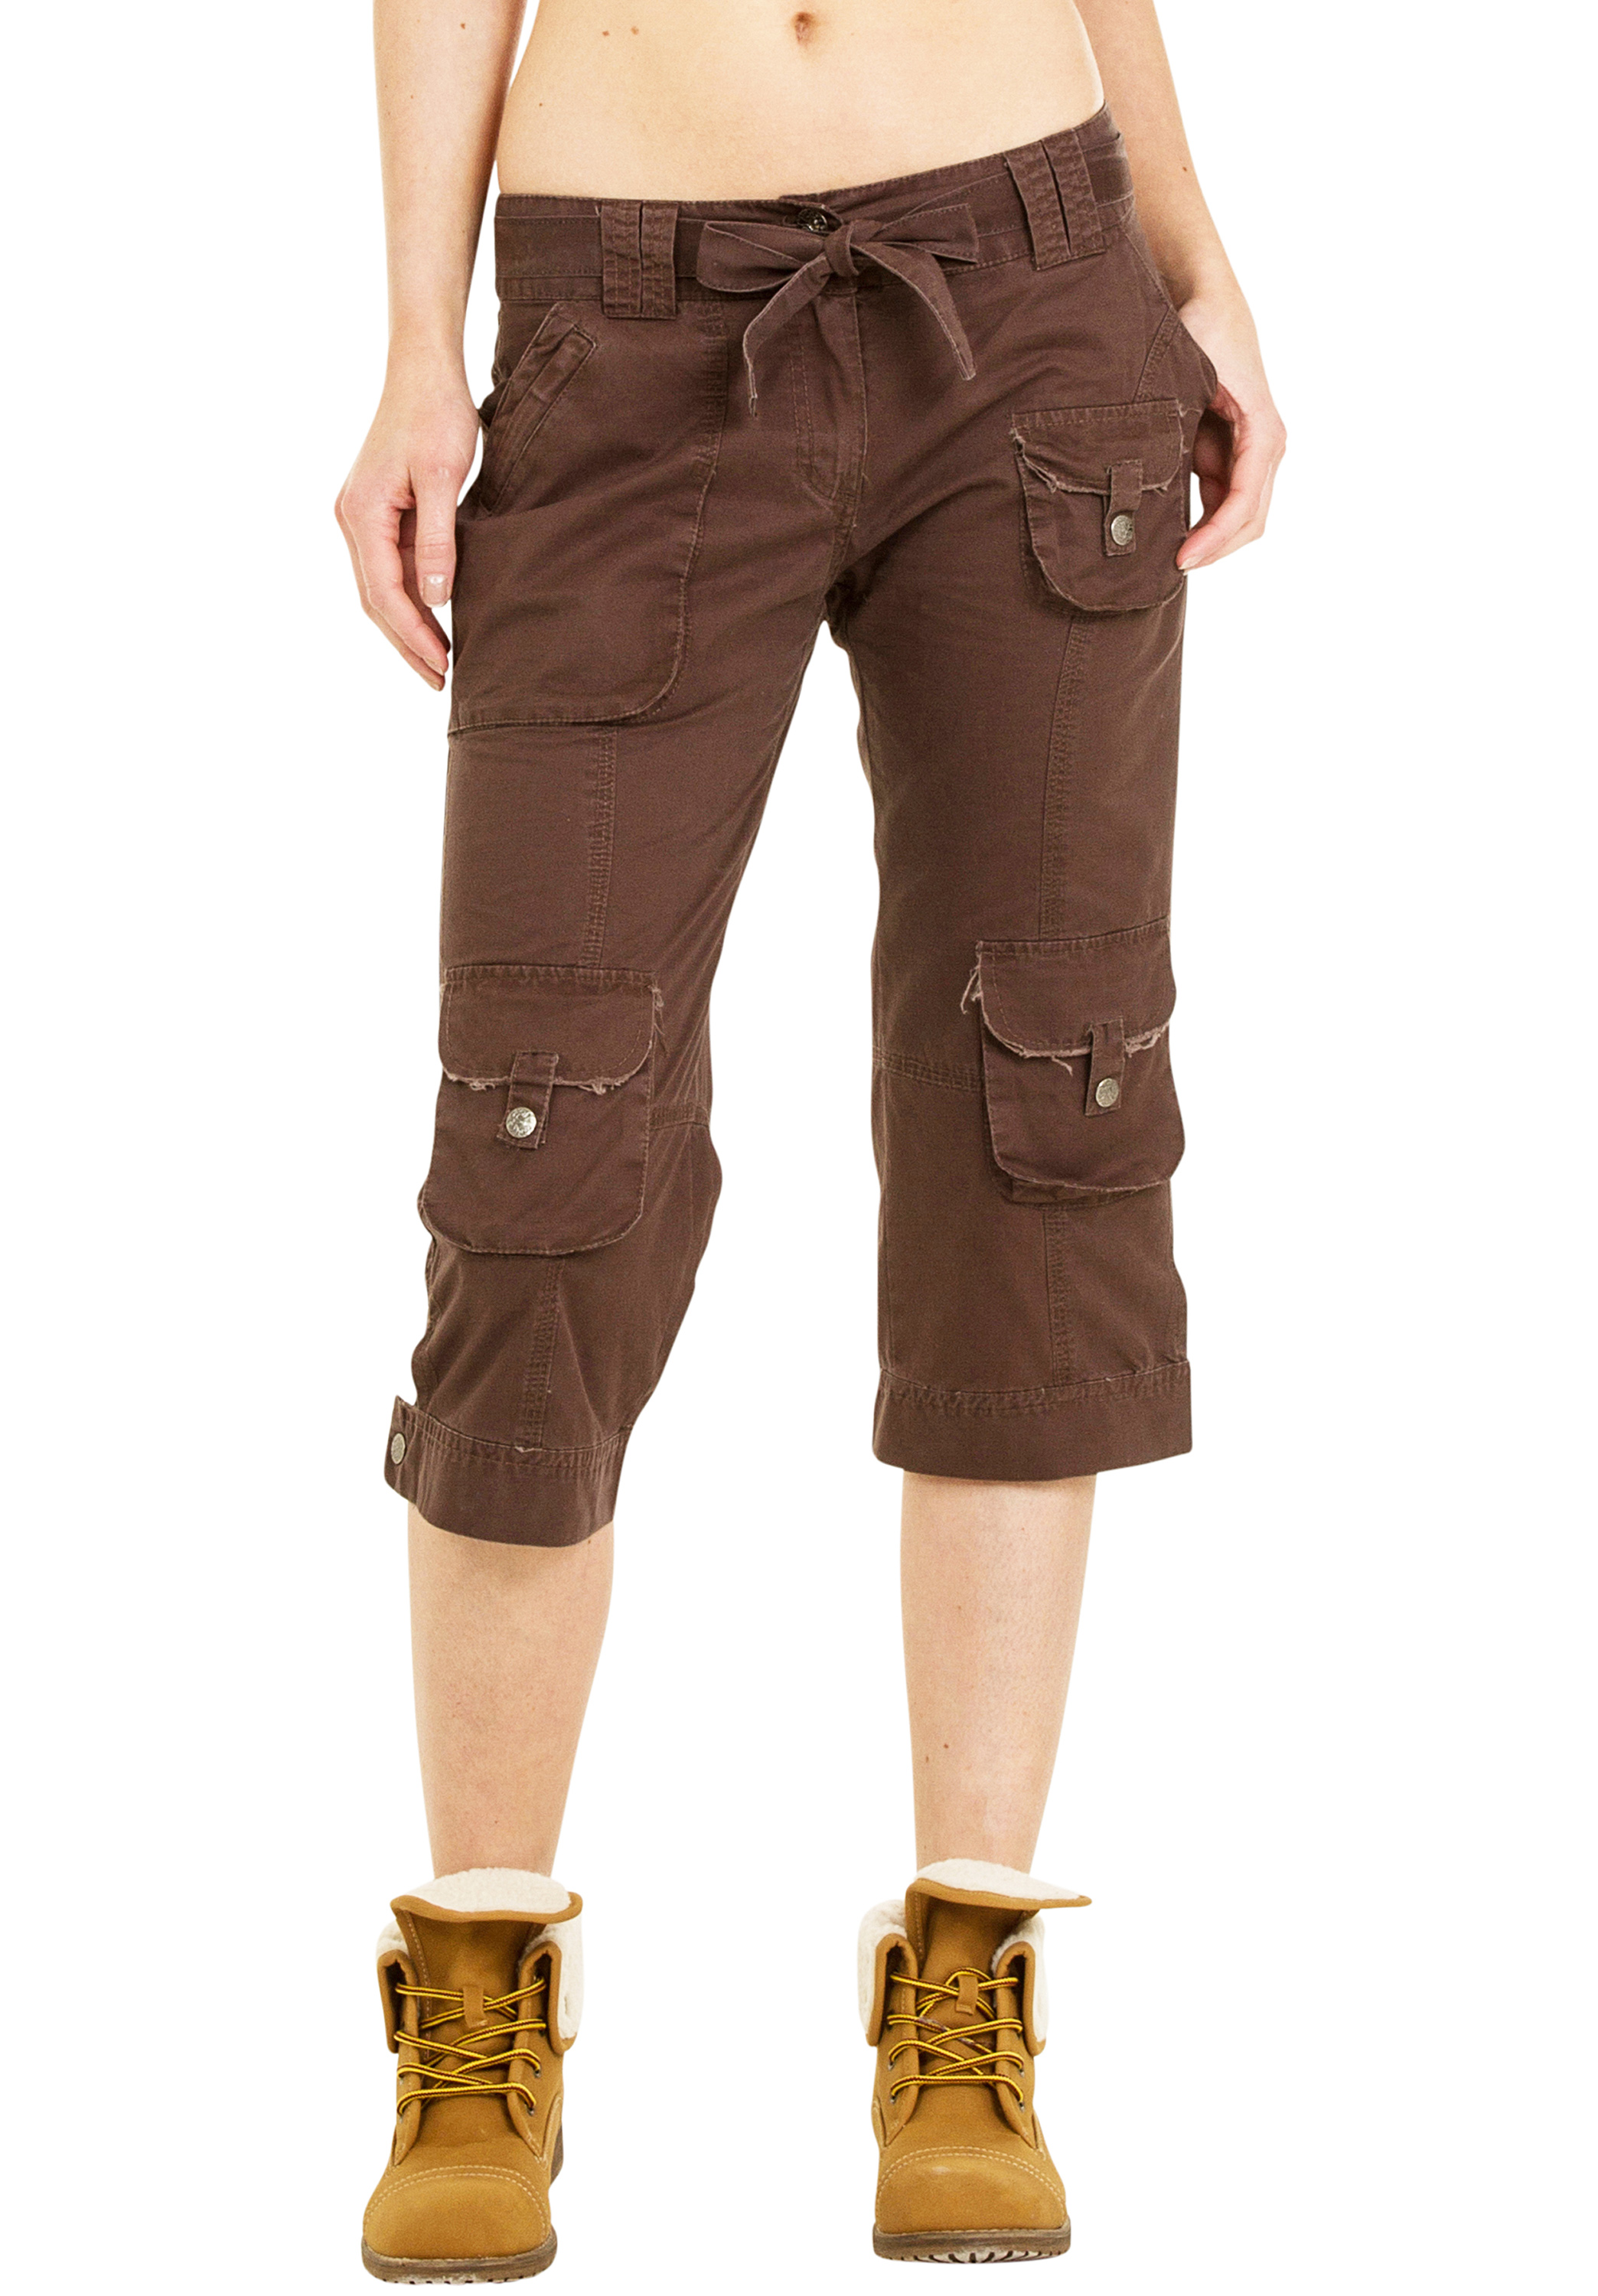 Beautiful Da Nang Womens Crop Capri Cargo Work Pants Long Shorts Pockets Army